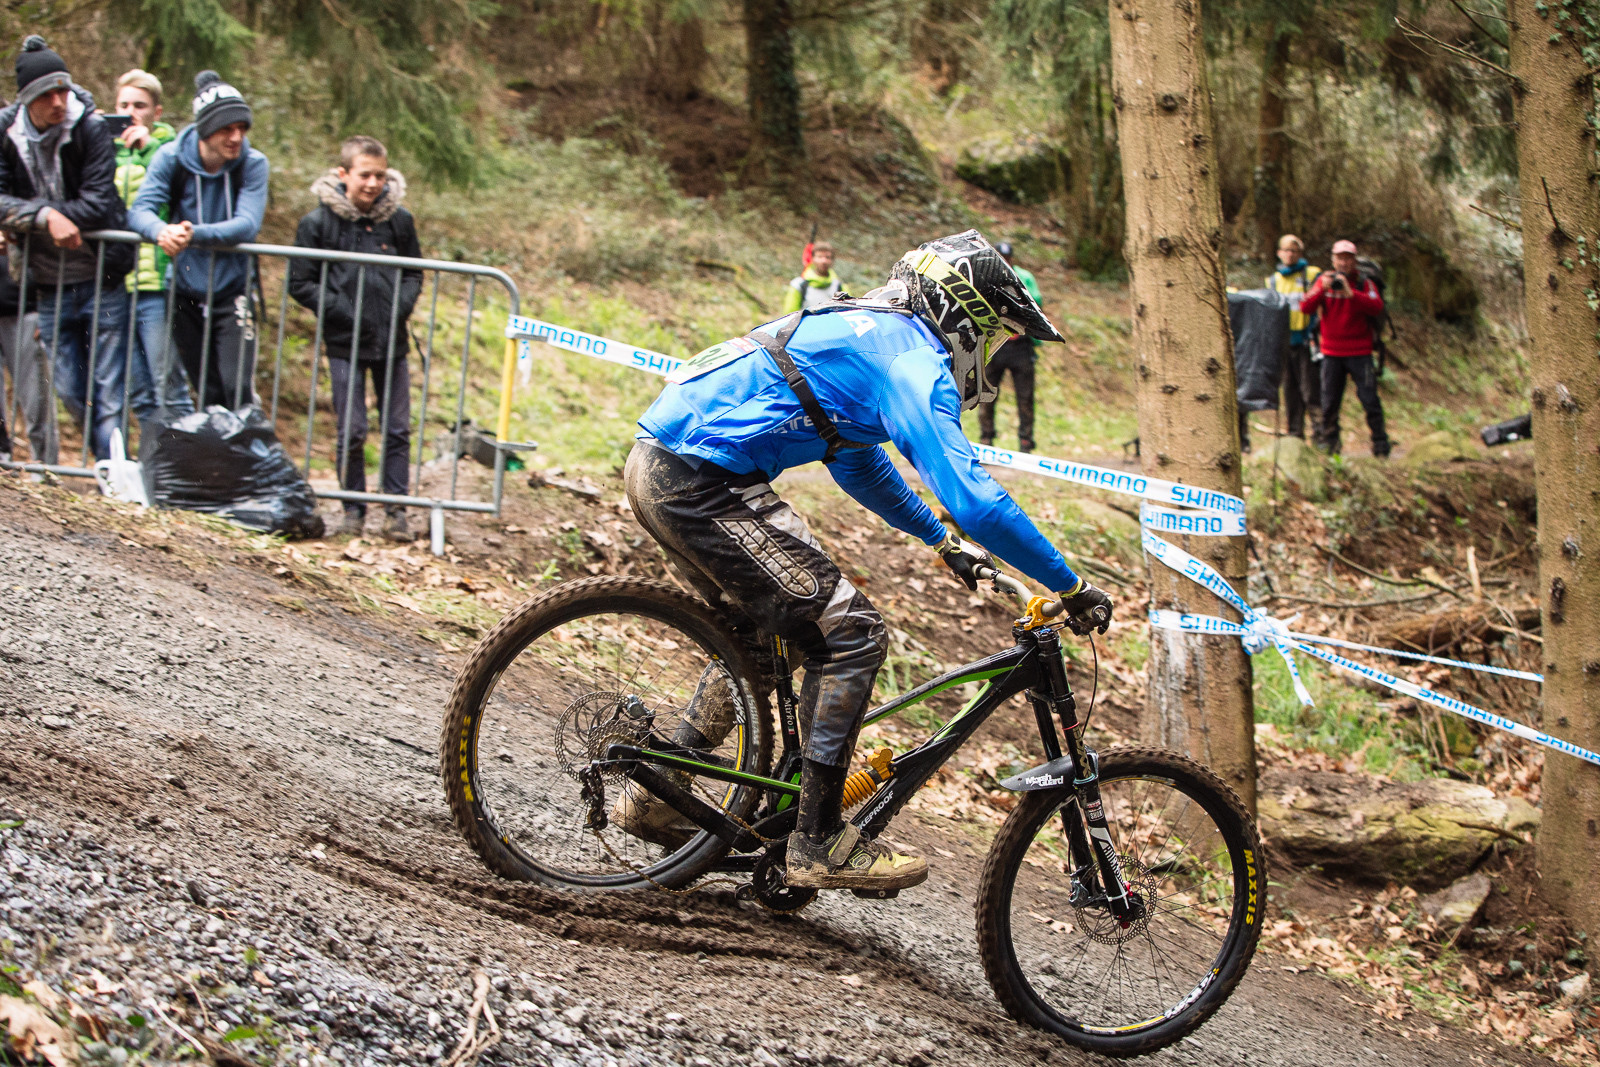 Nukeproof Bottom Out at Lourdes World Cup - G-Out Project - Lourdes World Cup DH - Mountain Biking Pictures - Vital MTB